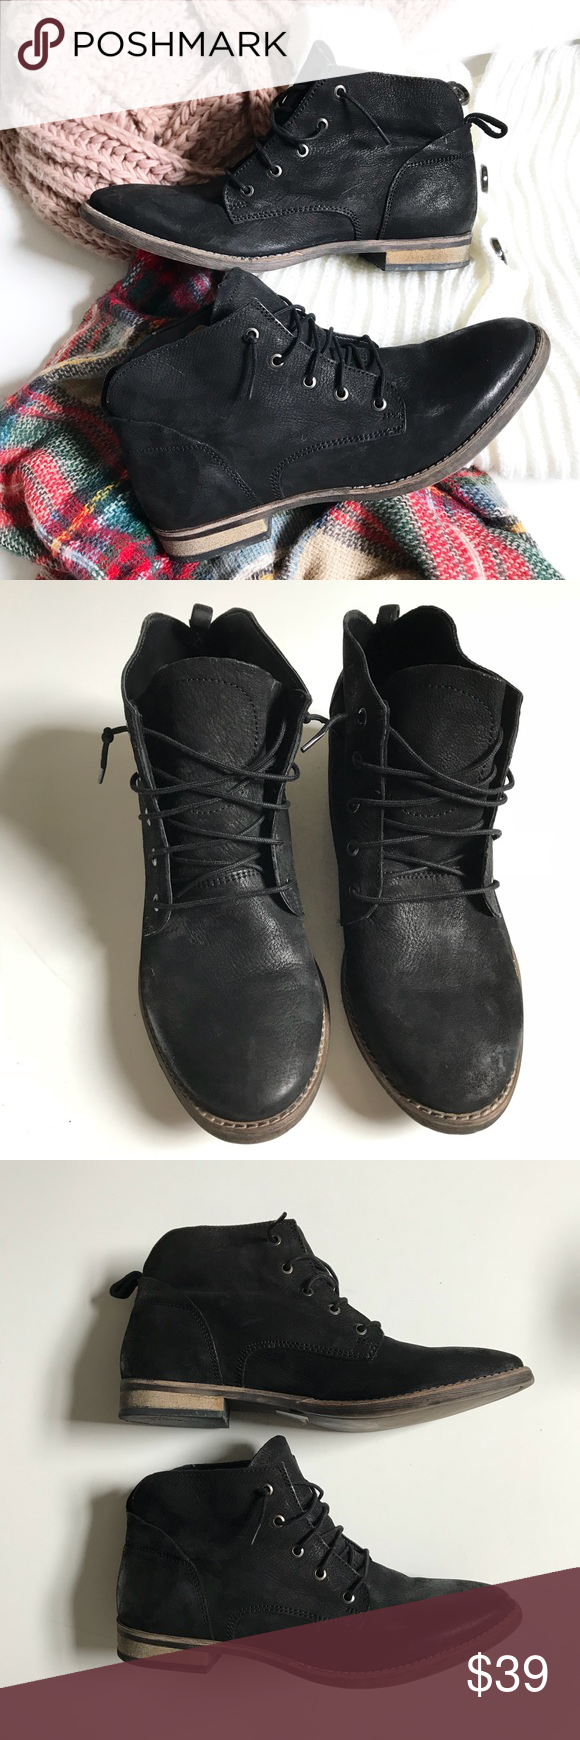 """06316ab531 Diba Leather Black Lace Up Ankle Boots """"Eli"""" 10M Diba black leather lace up  ankle boots. Eli 91101. Great casual"""